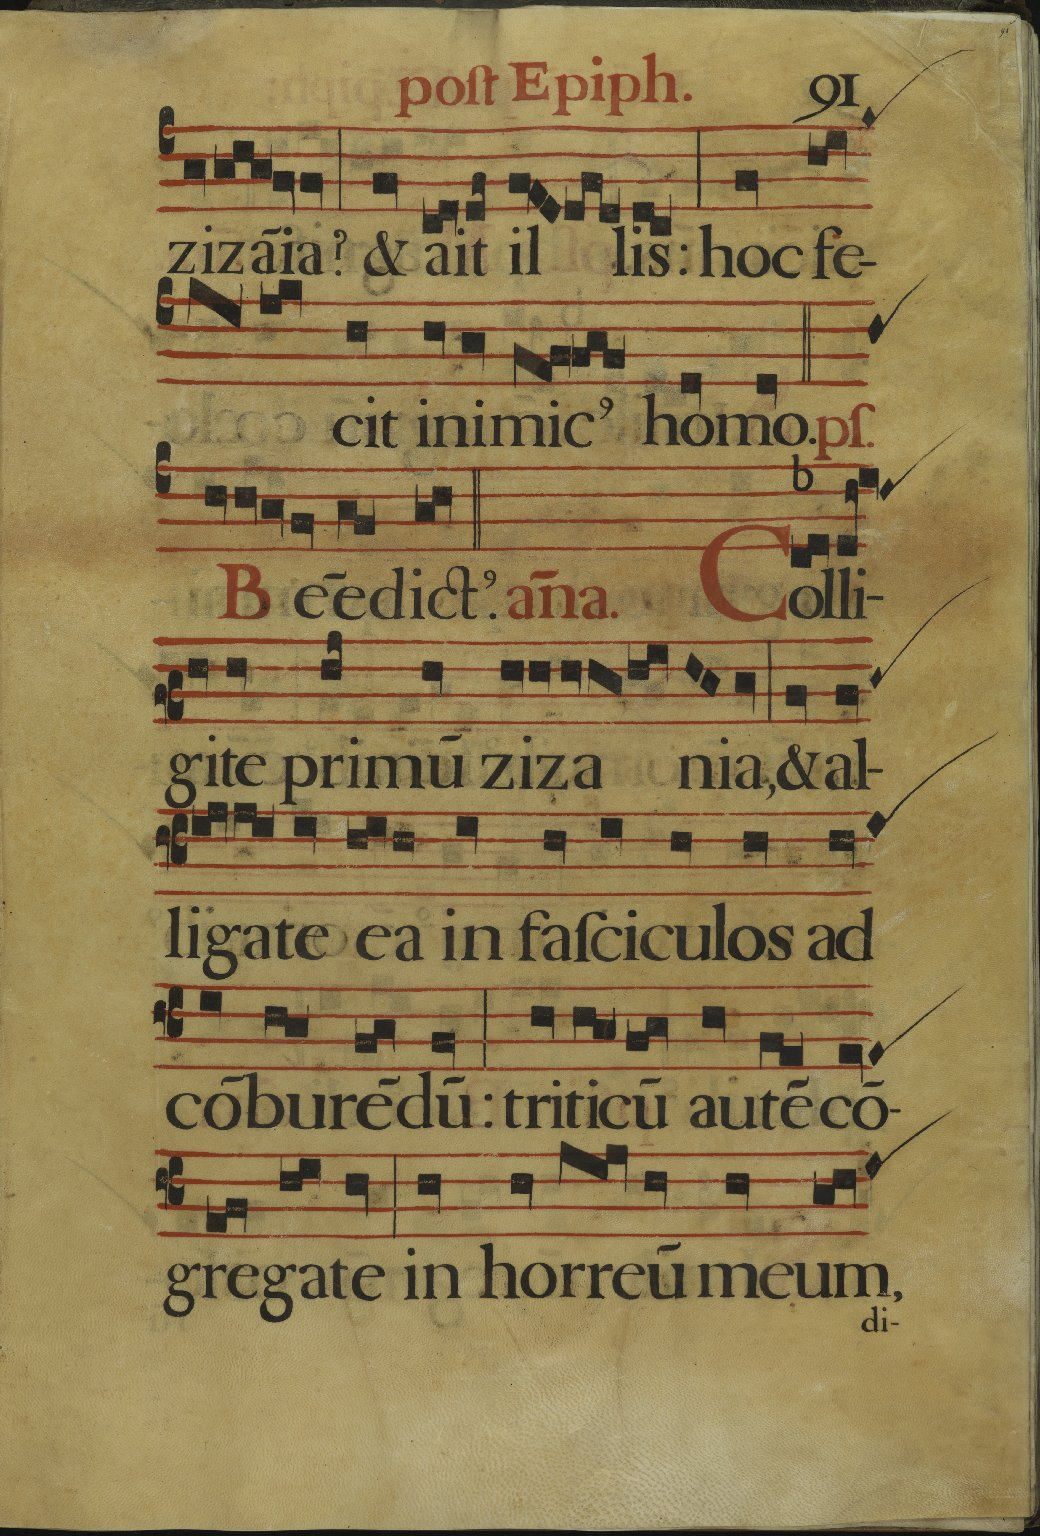 The Spanish Antiphoner. Page 91